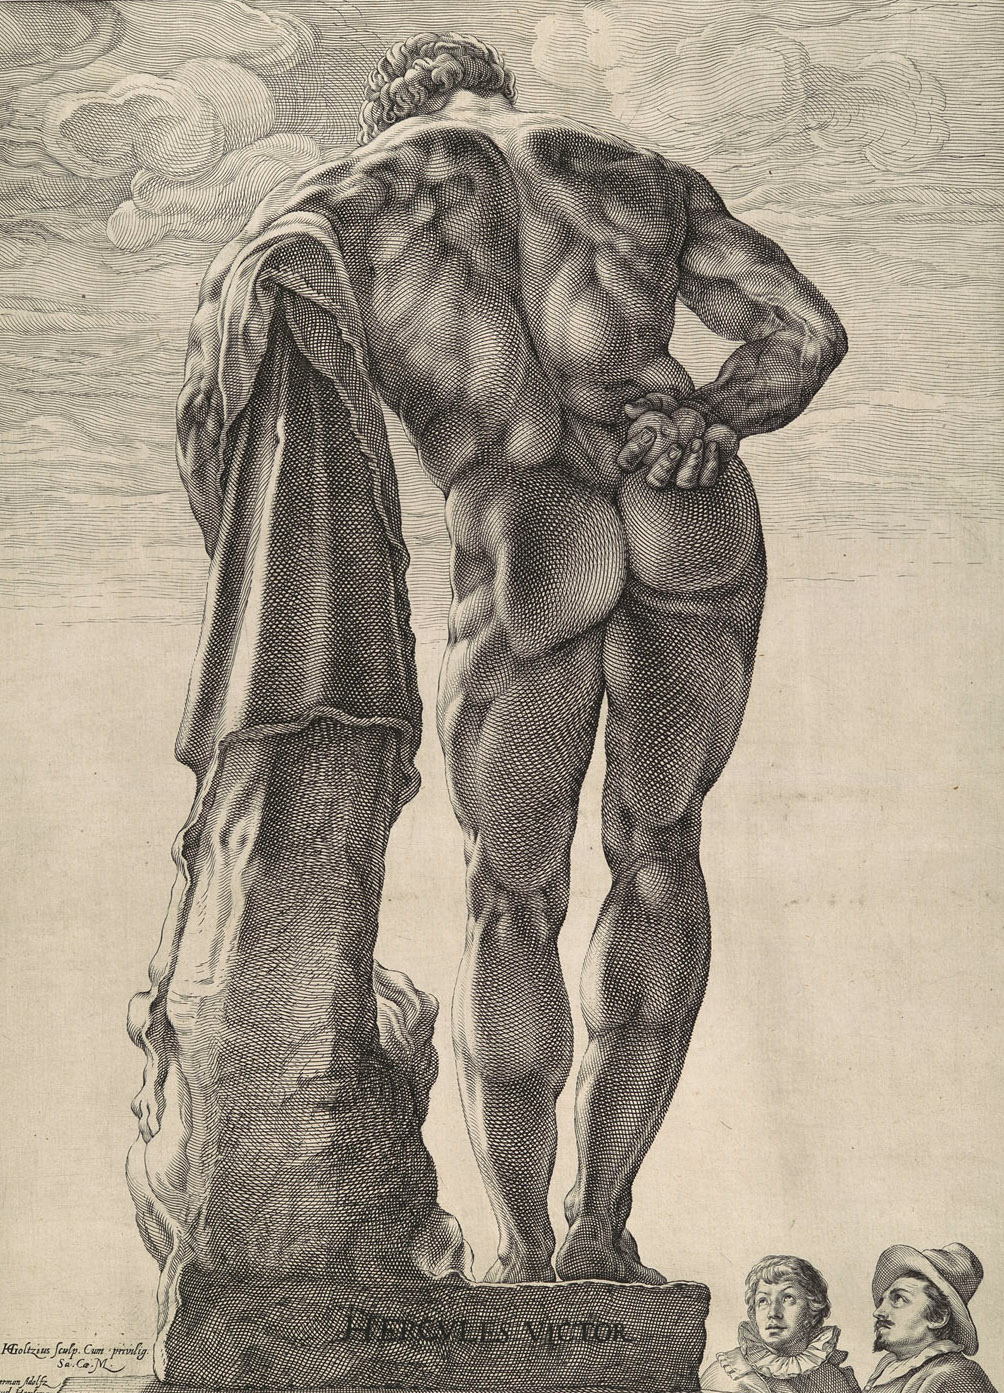 An engraving of the famed  Farnese Hercules,  one of the most muscular statues of antiquity.